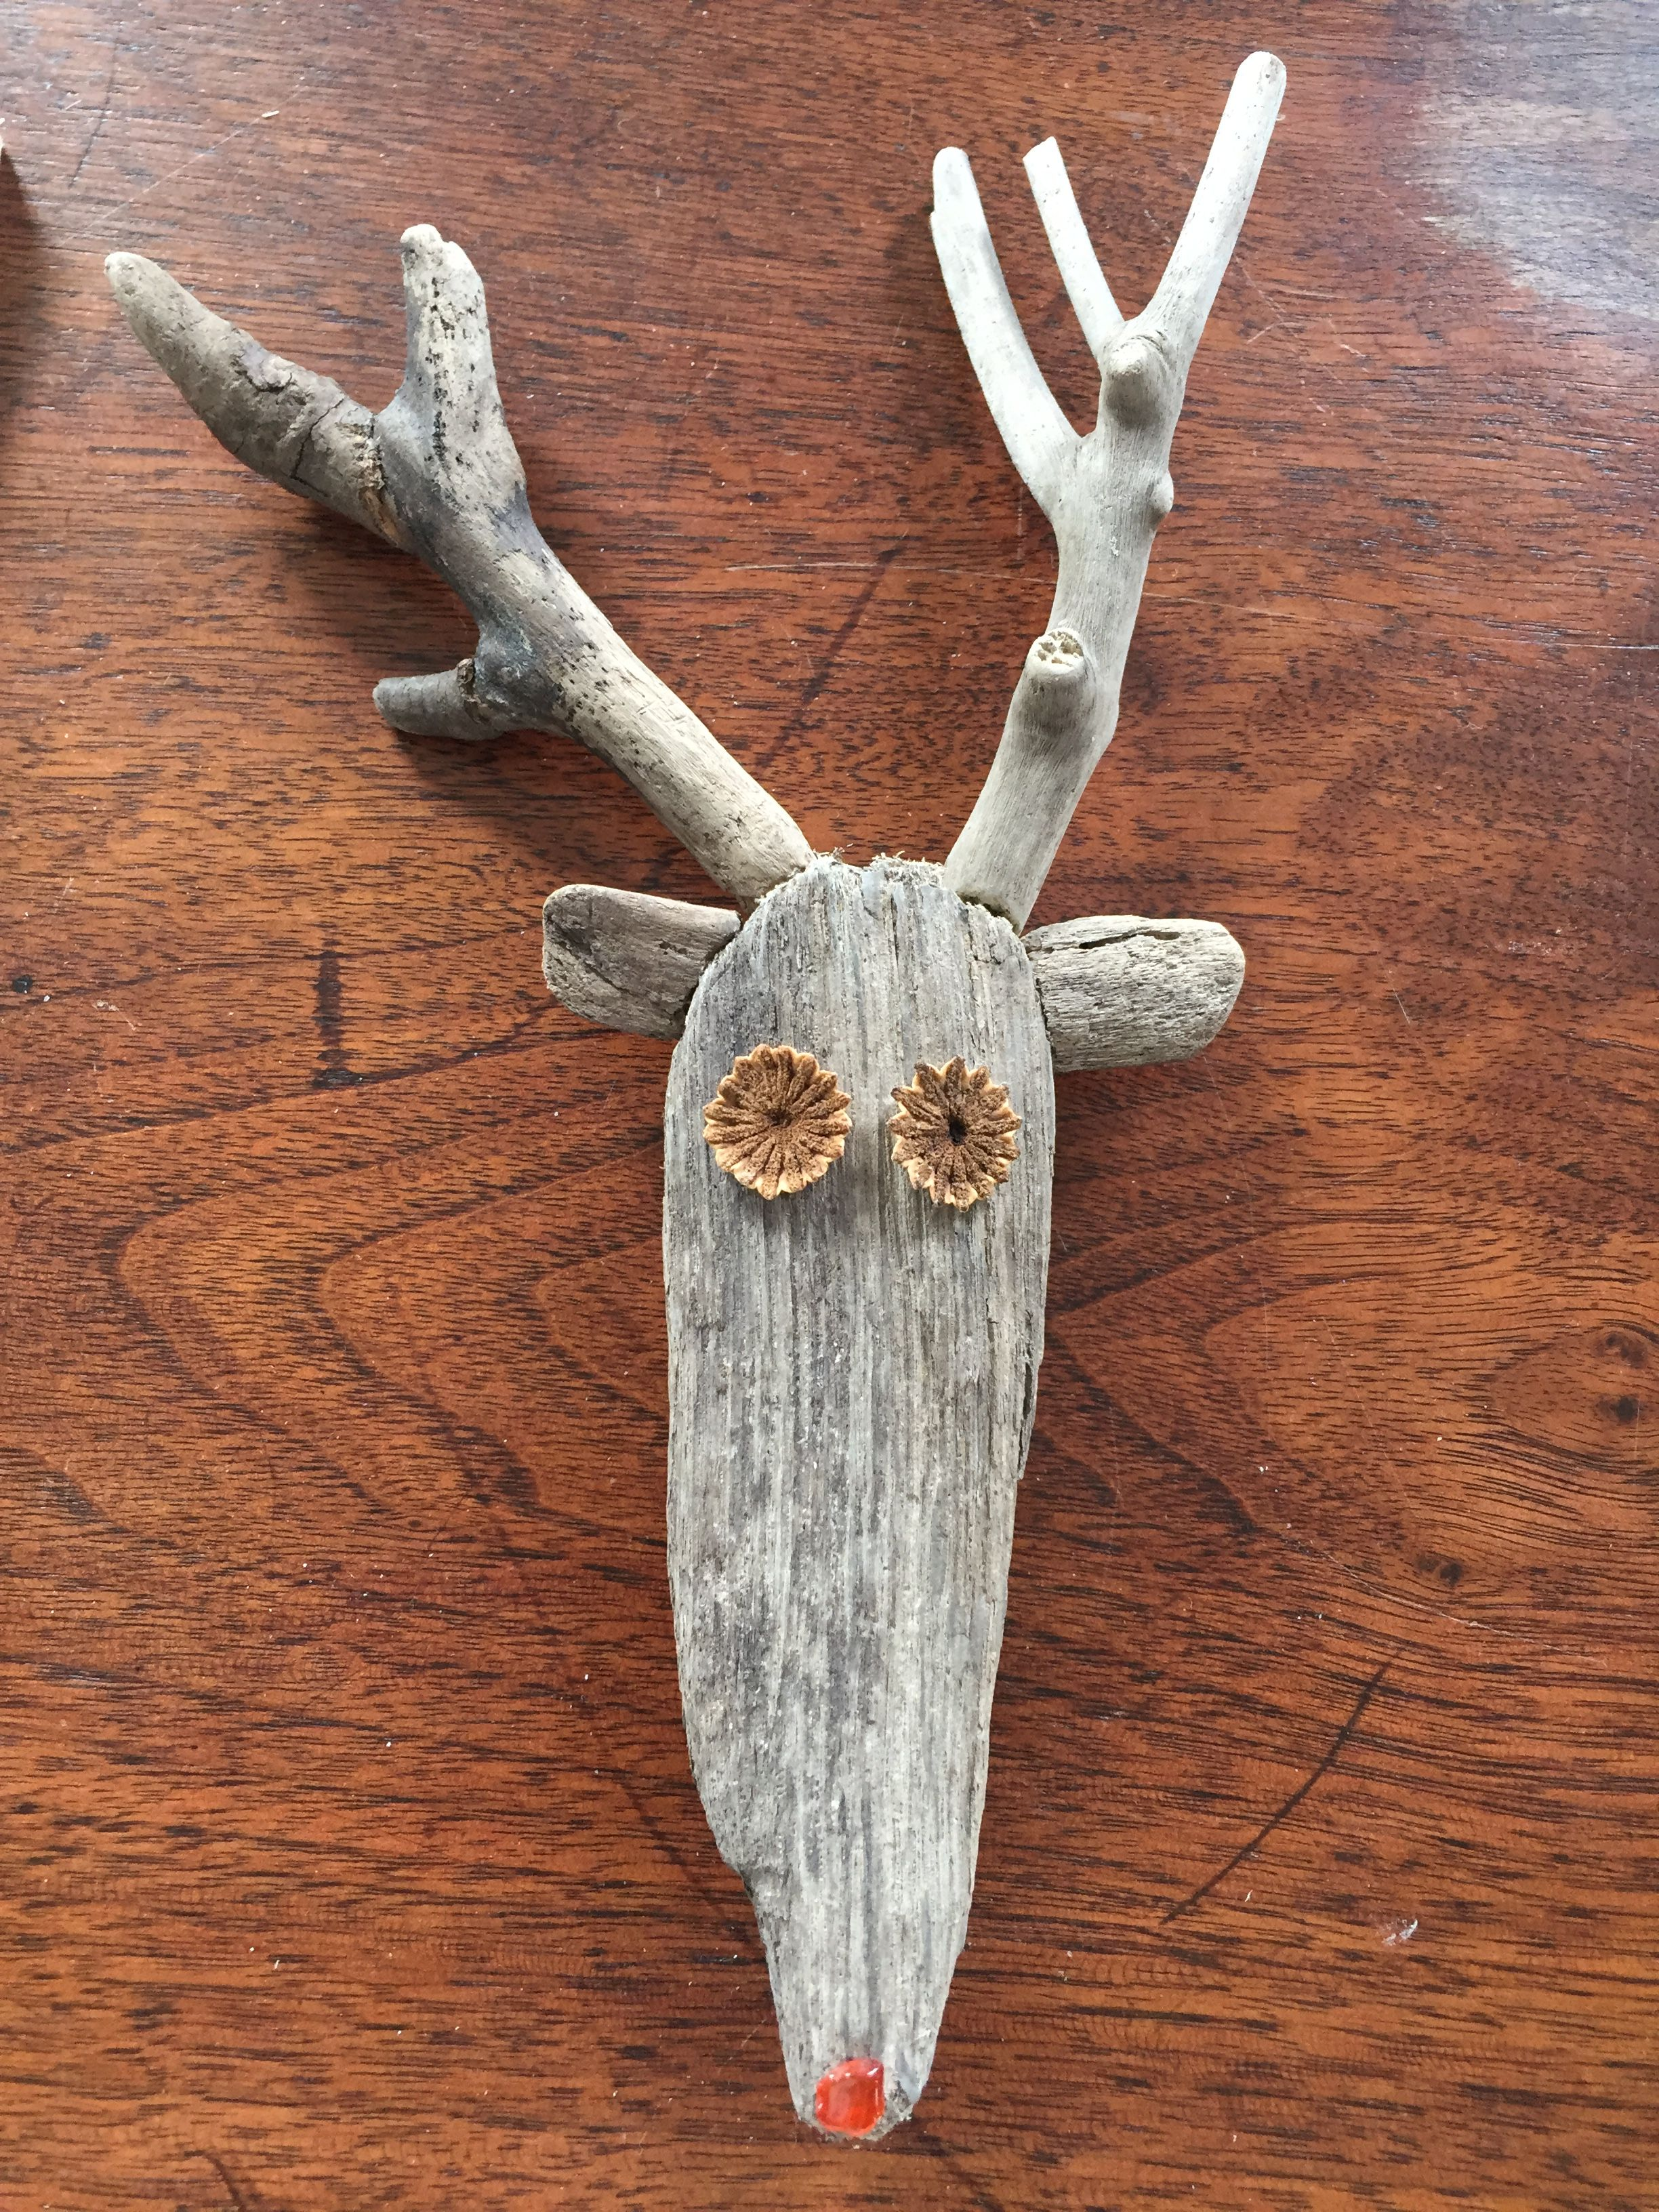 My Version Of Reindeer, With Red Beach Glass & Poppy